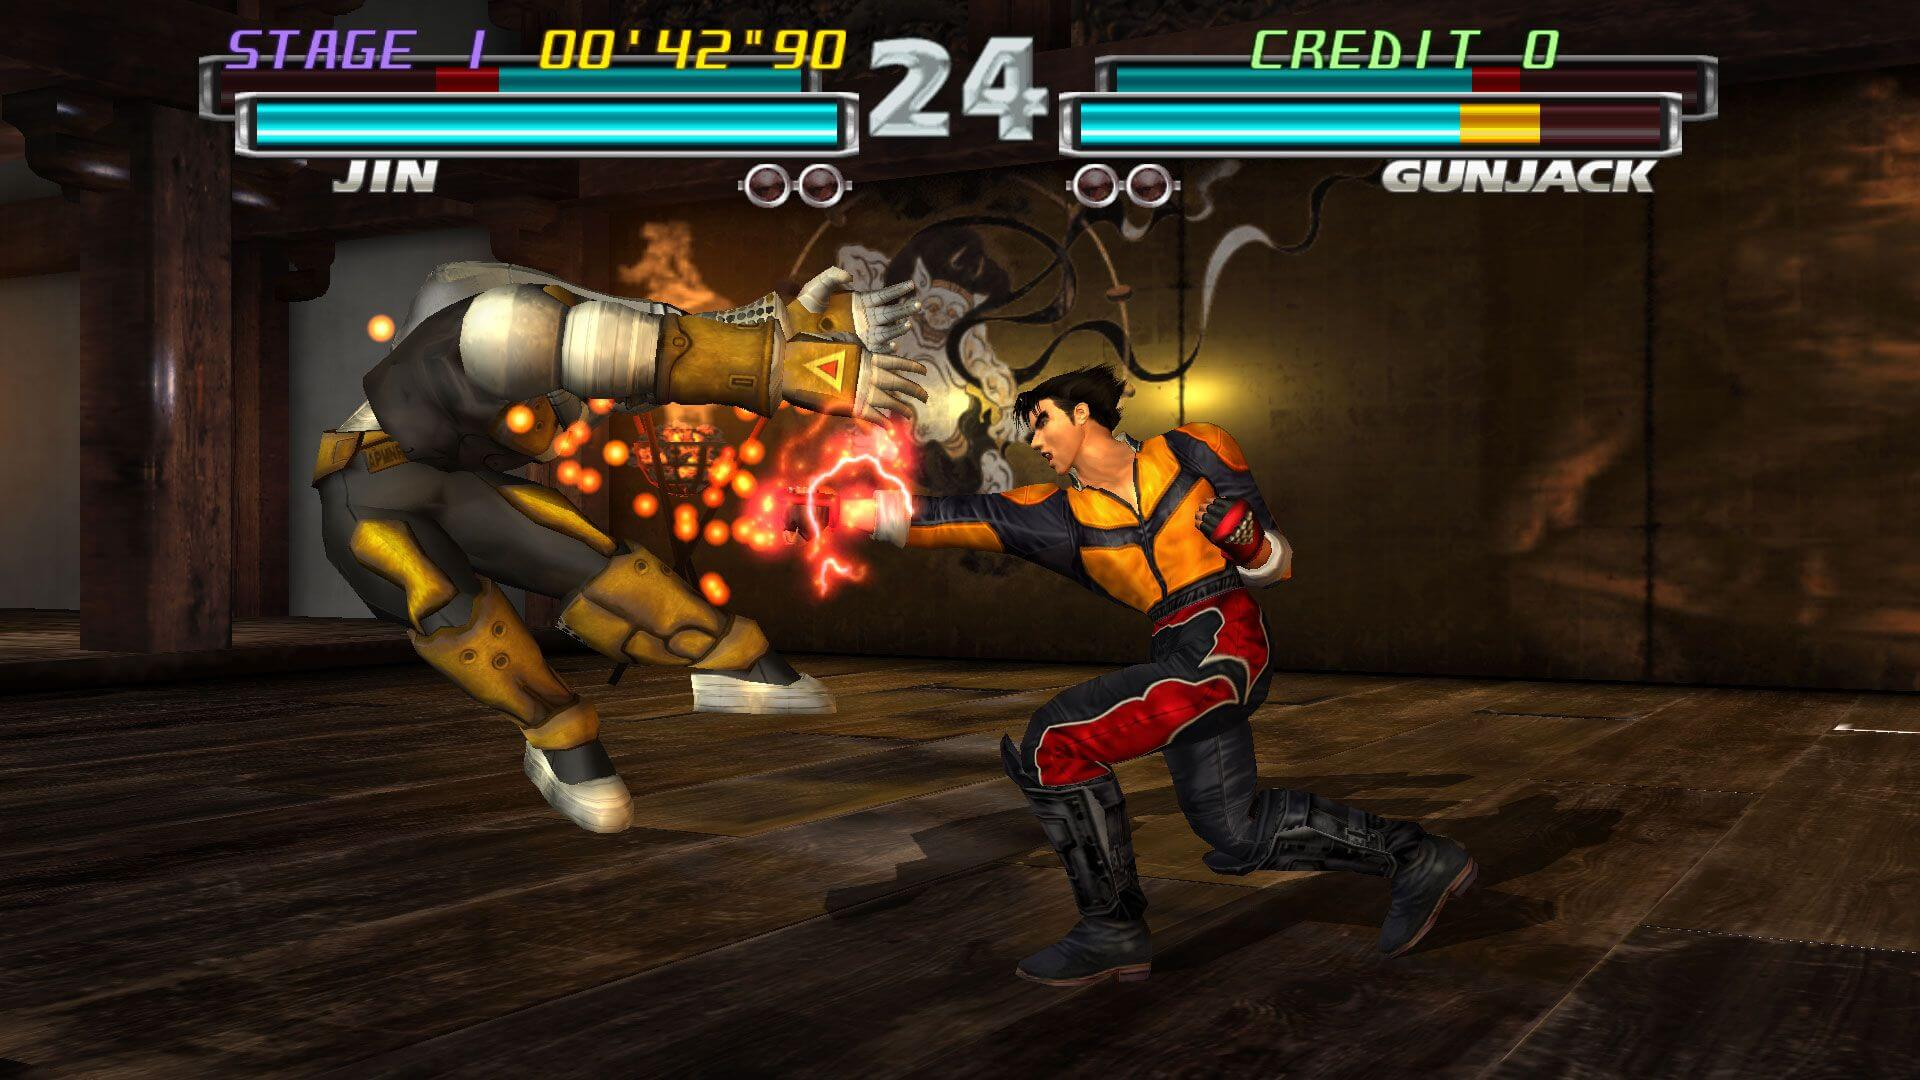 Tekken Tag Tournament is named one of the best games on the PS